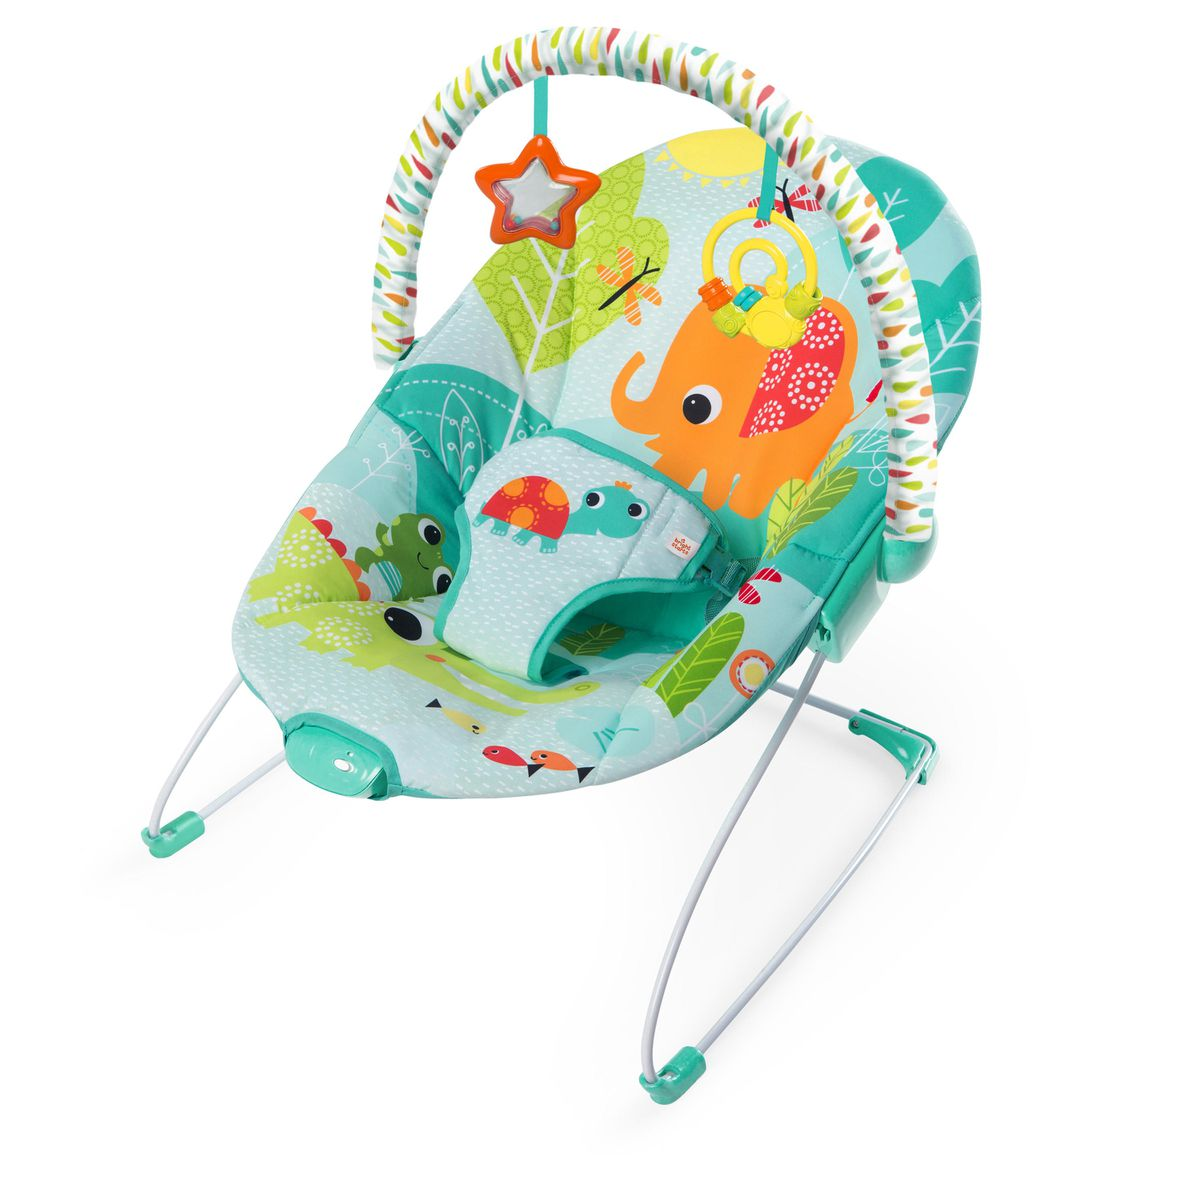 Bright Starts - Vibrating Bouncer - Raindrop Rainforest | Buy Online ...